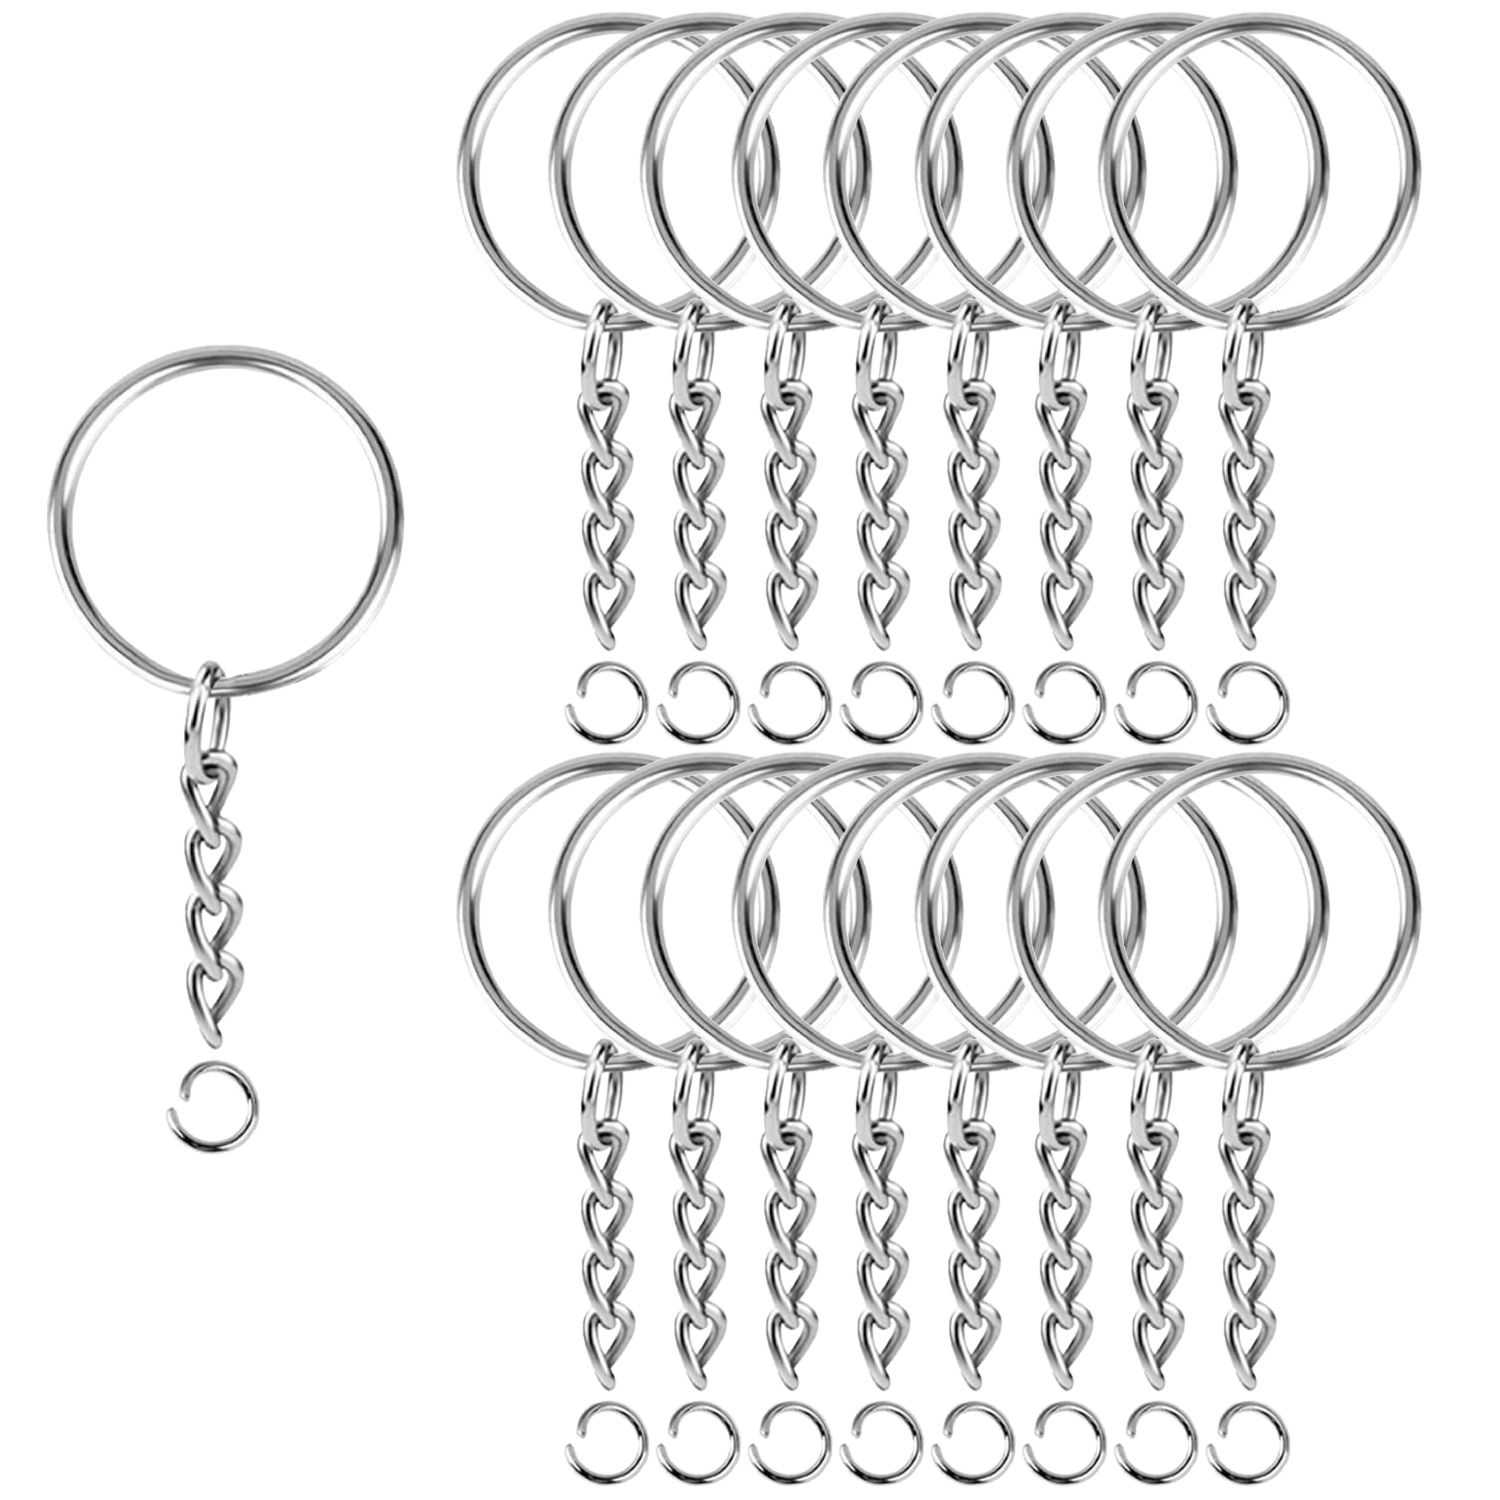 BEADNOVA Split Key Ring with Key Chains and Jump Ring Metal Split Keychains Ring for Crafts DIY Keychain Accessories Resin(25mm, 300pcs)